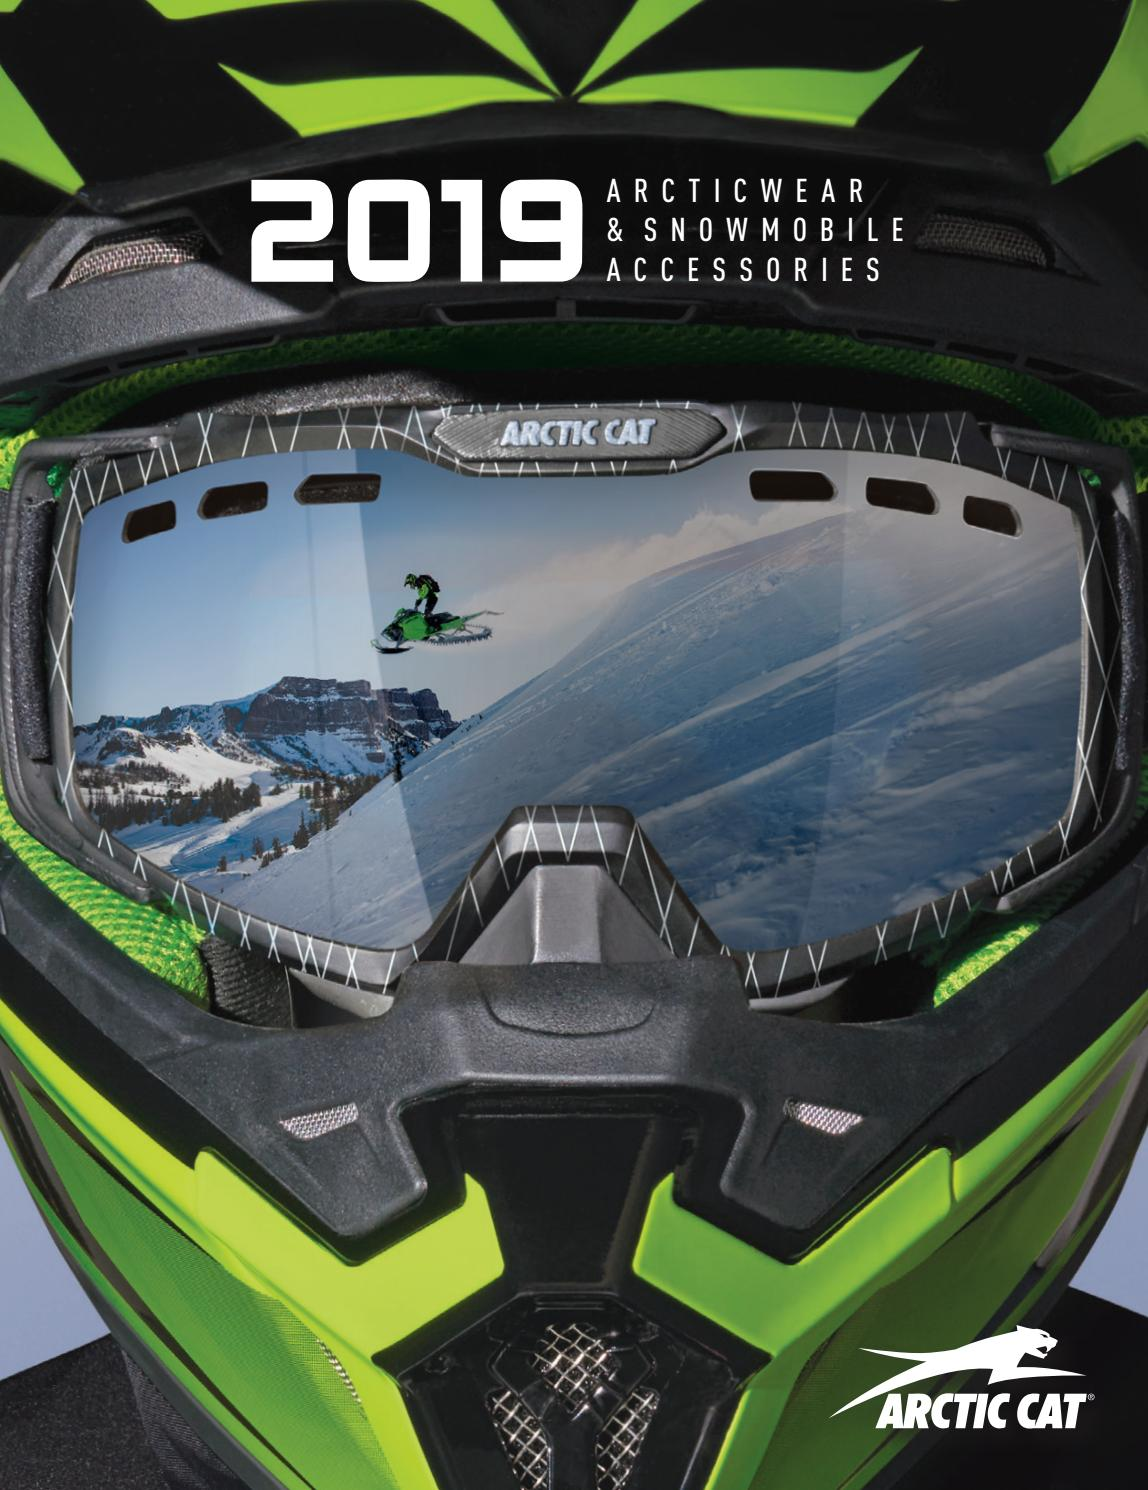 hight resolution of 2019 arcticwear snowmobile accessories